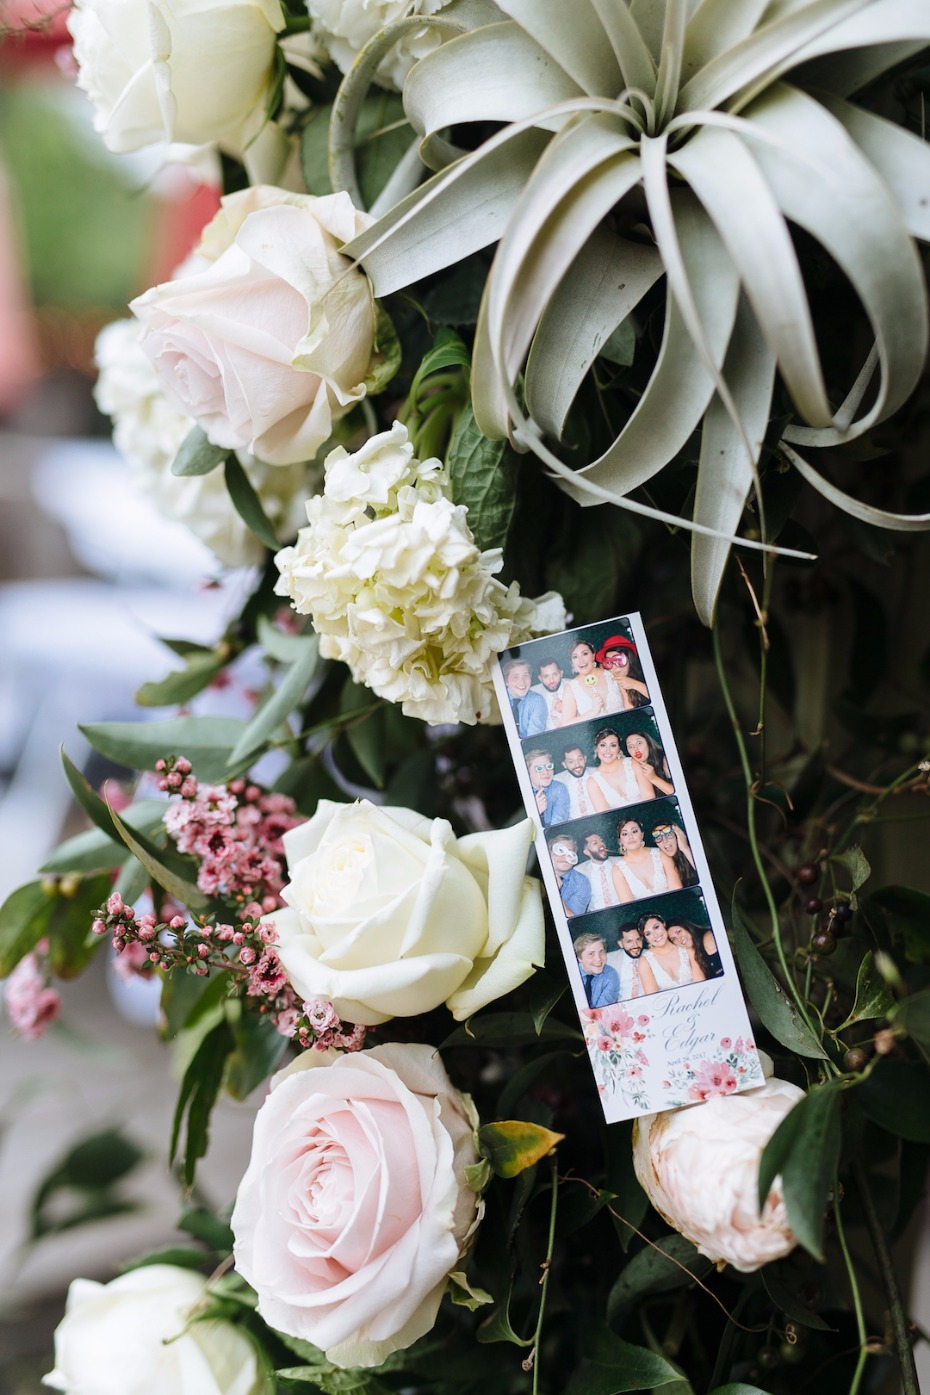 Favor idea! Have a photo booth at your wedding